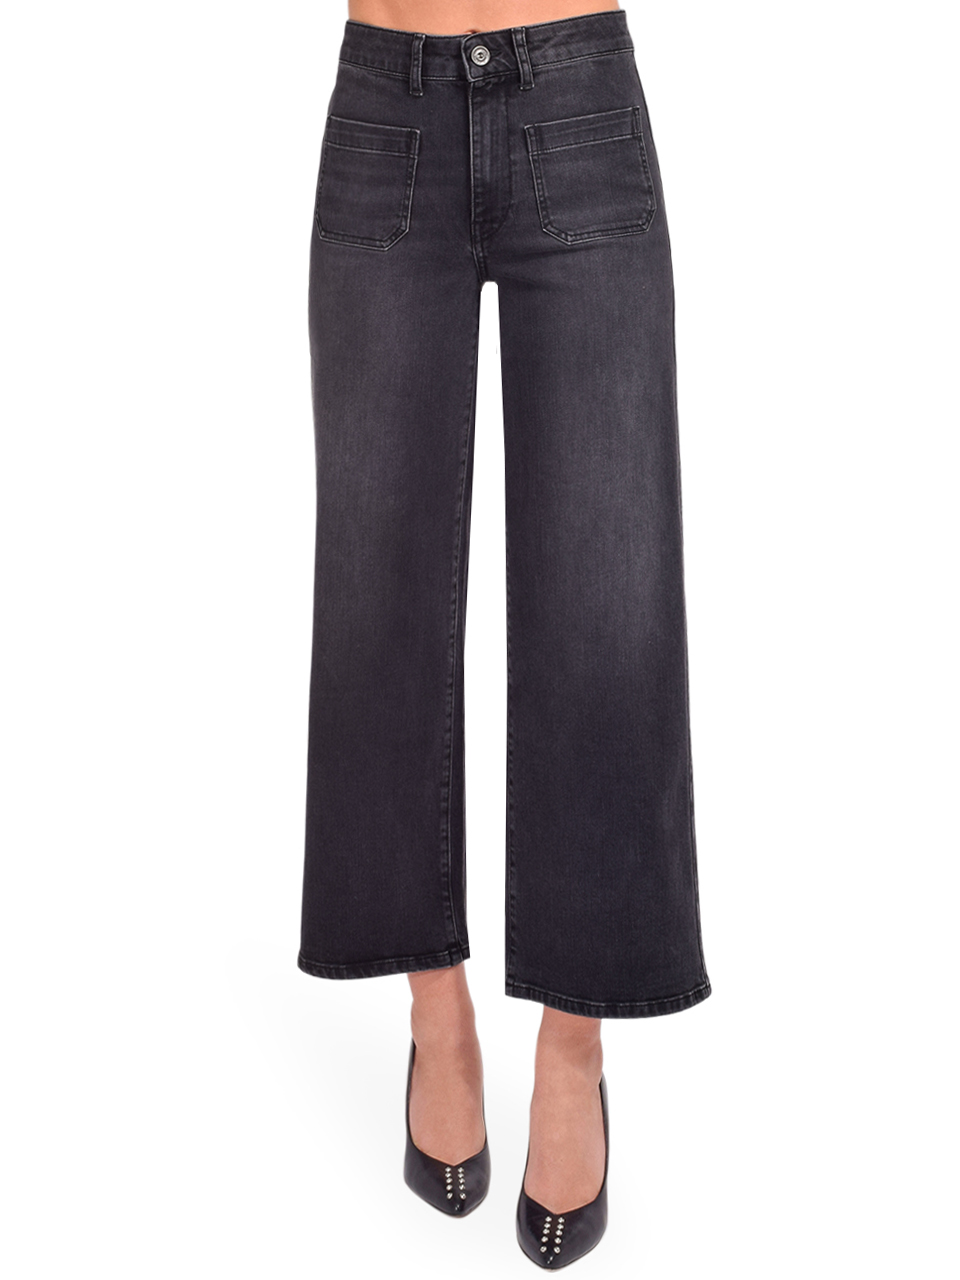 Ottod'Ame Cropped French Jeans in Black Front View